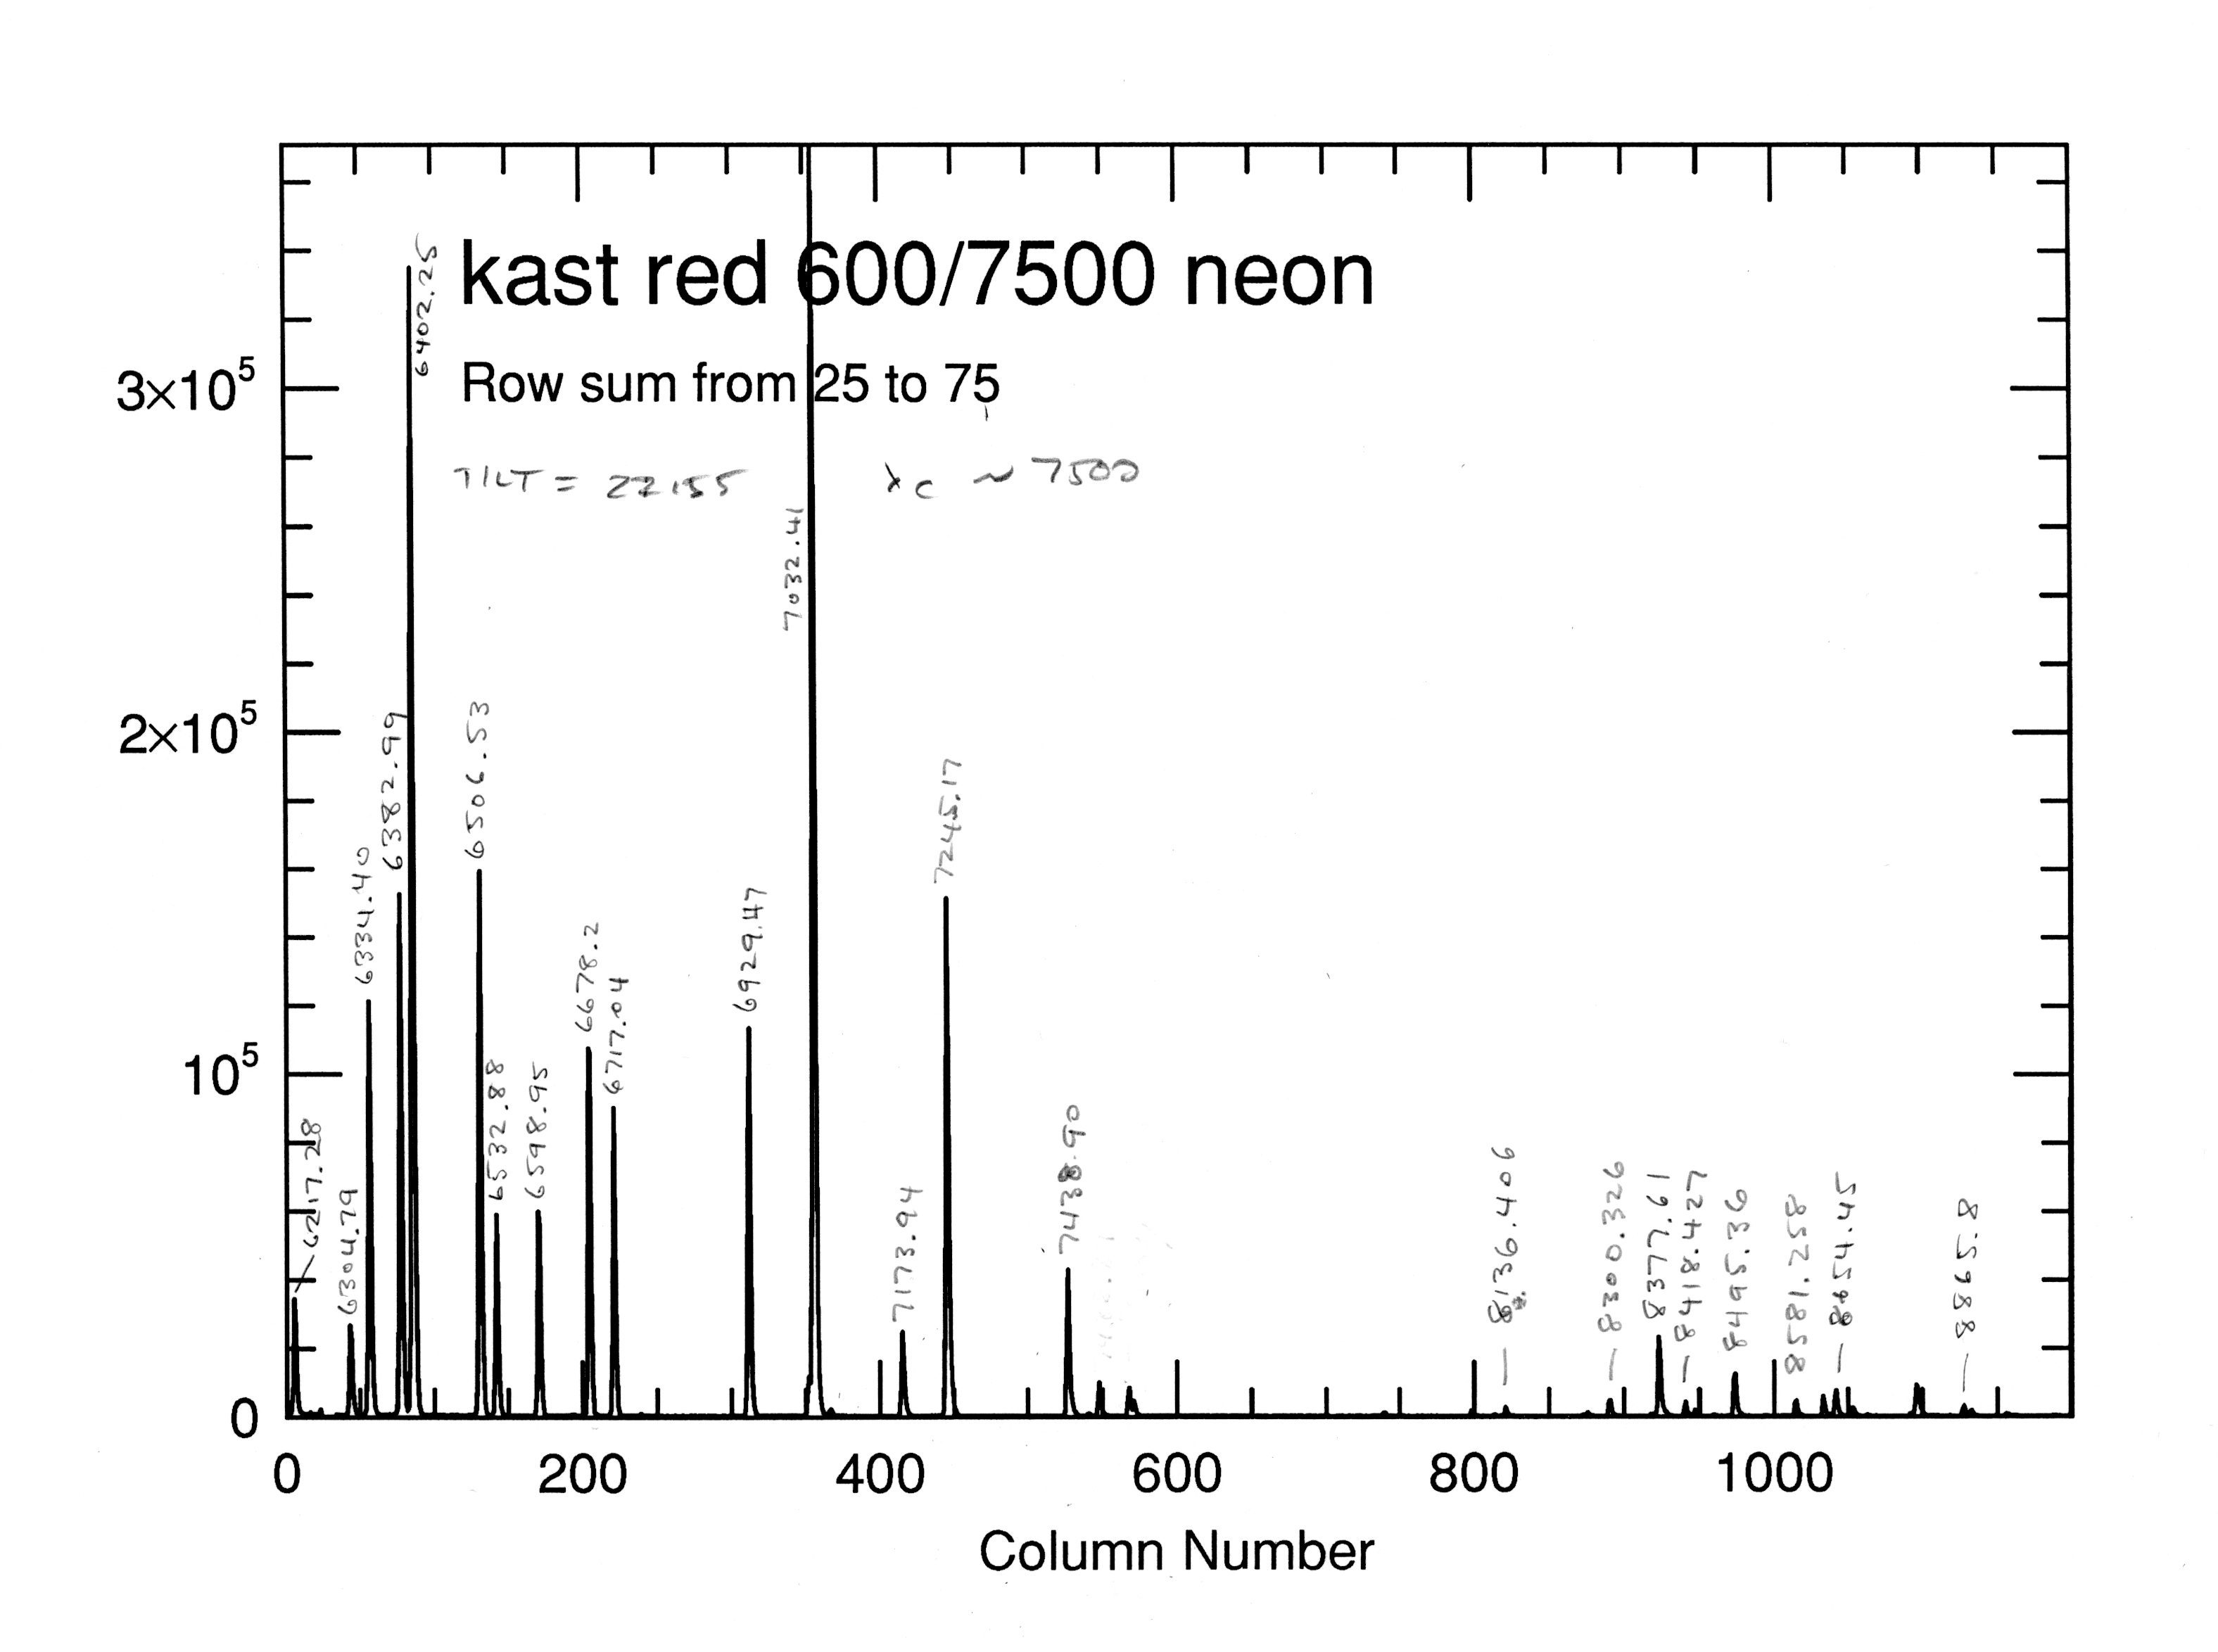 Kast Double Spectrograph User's Manual: Calibration Lamp